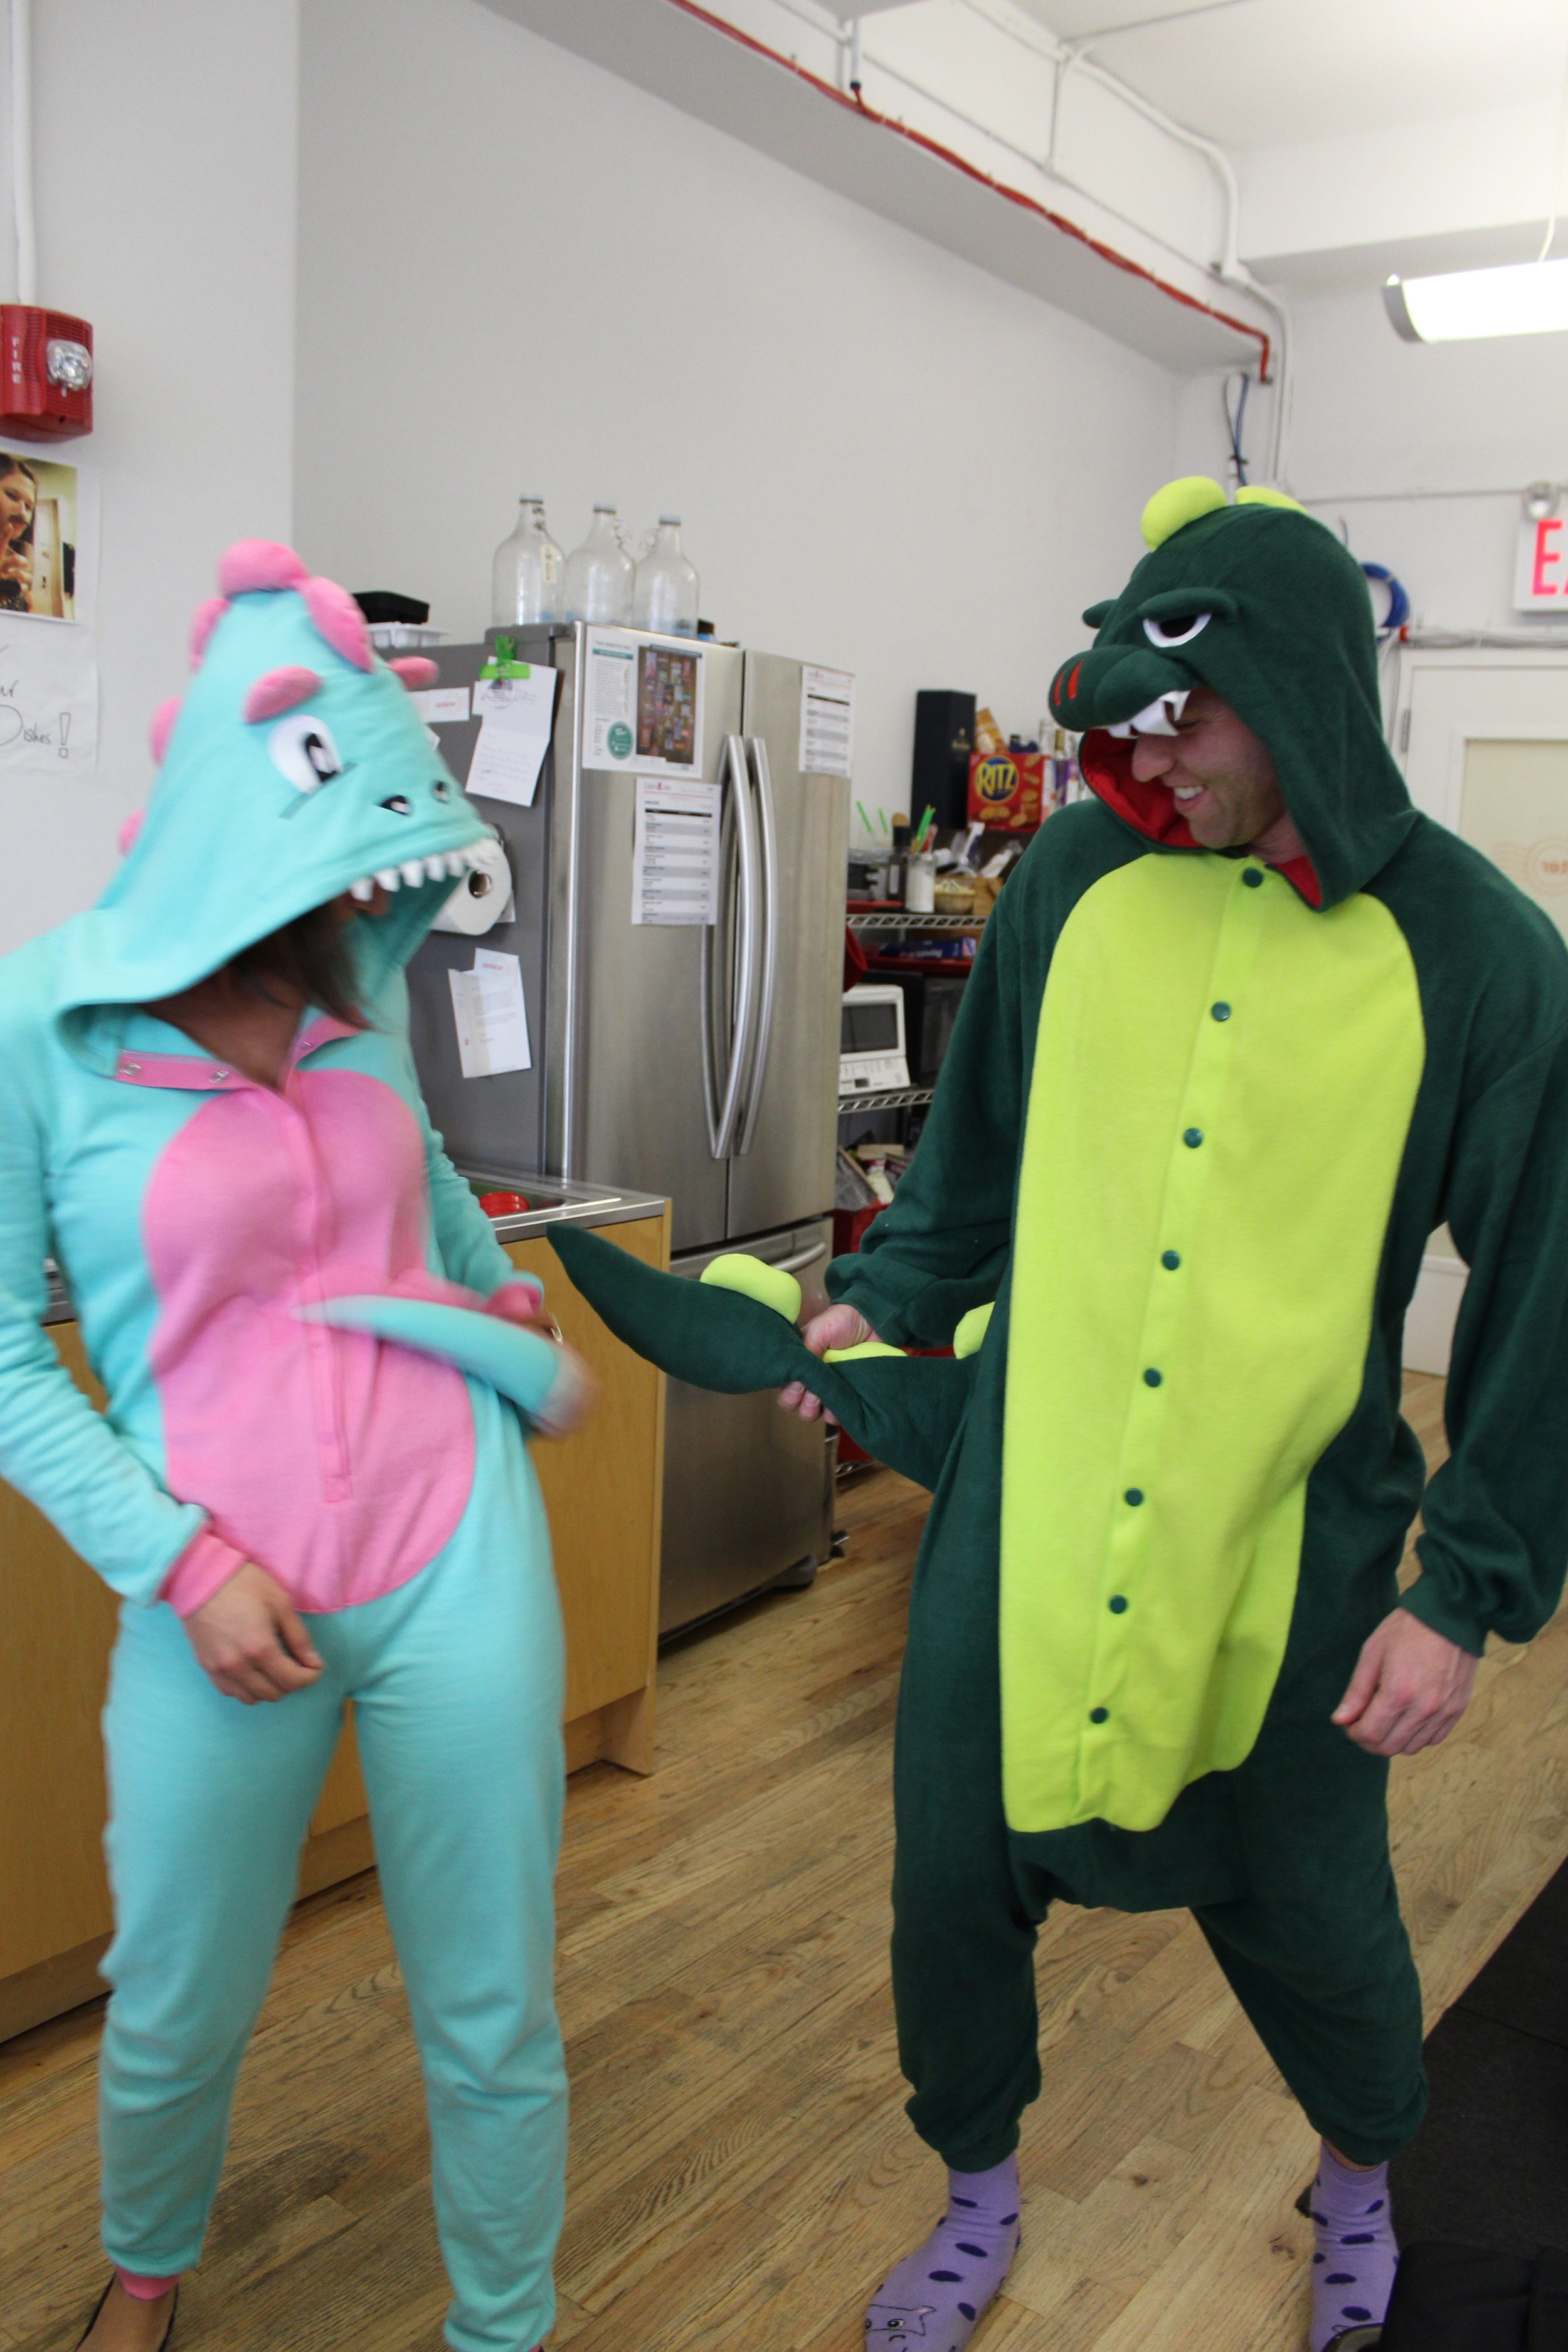 Brittany the dinosaur and Ryan the alligator in battle.